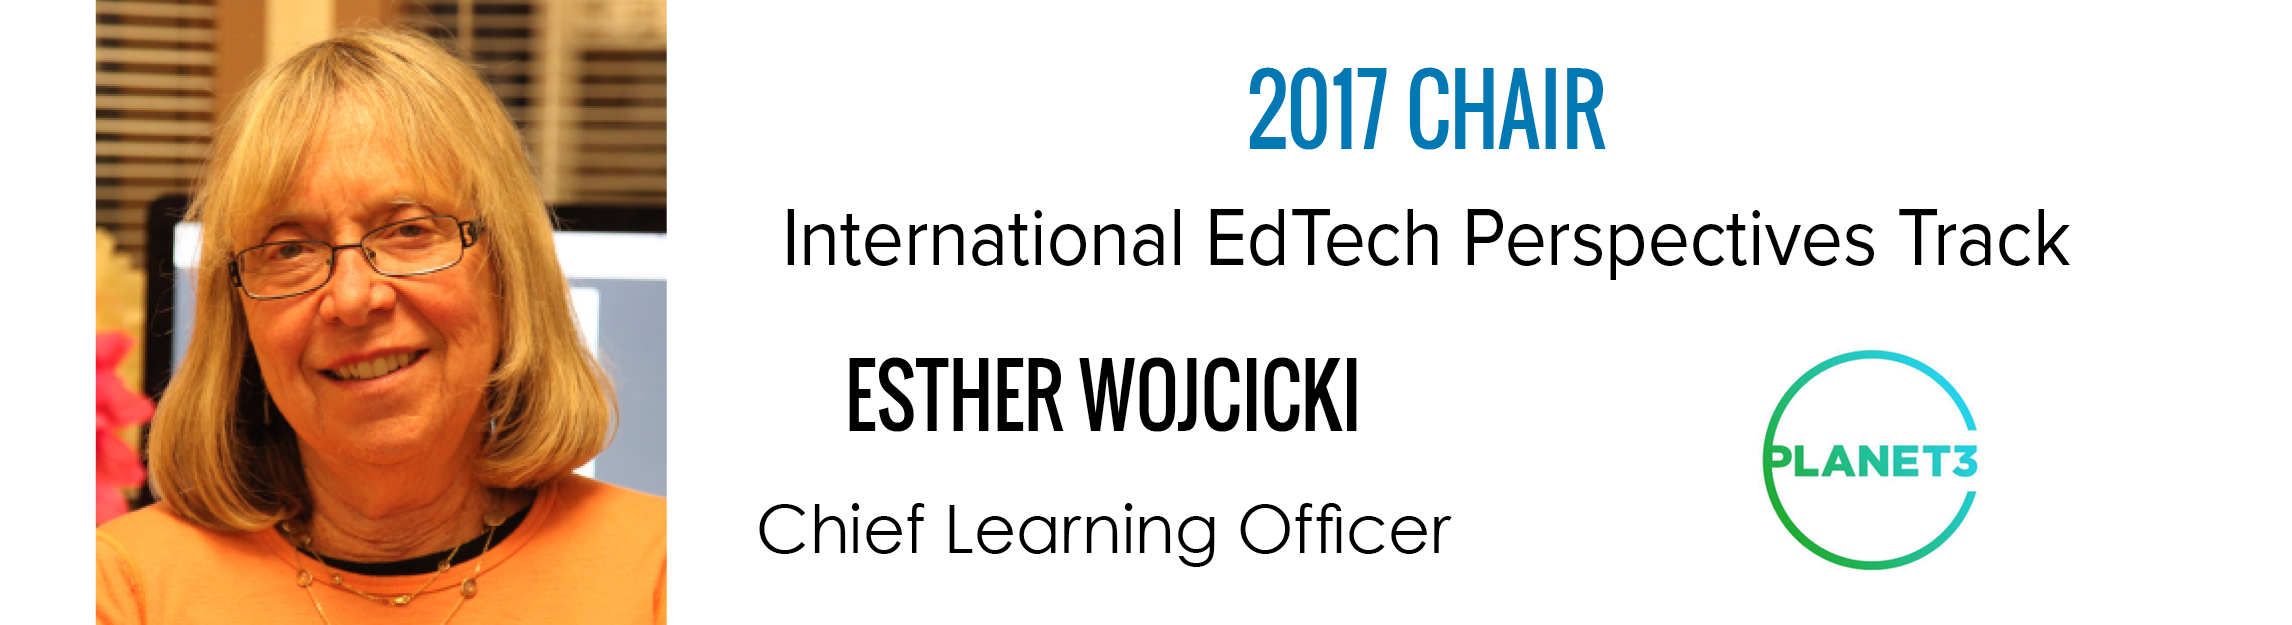 Esther - Chairman - International EdTech Perspectives- Chair.png